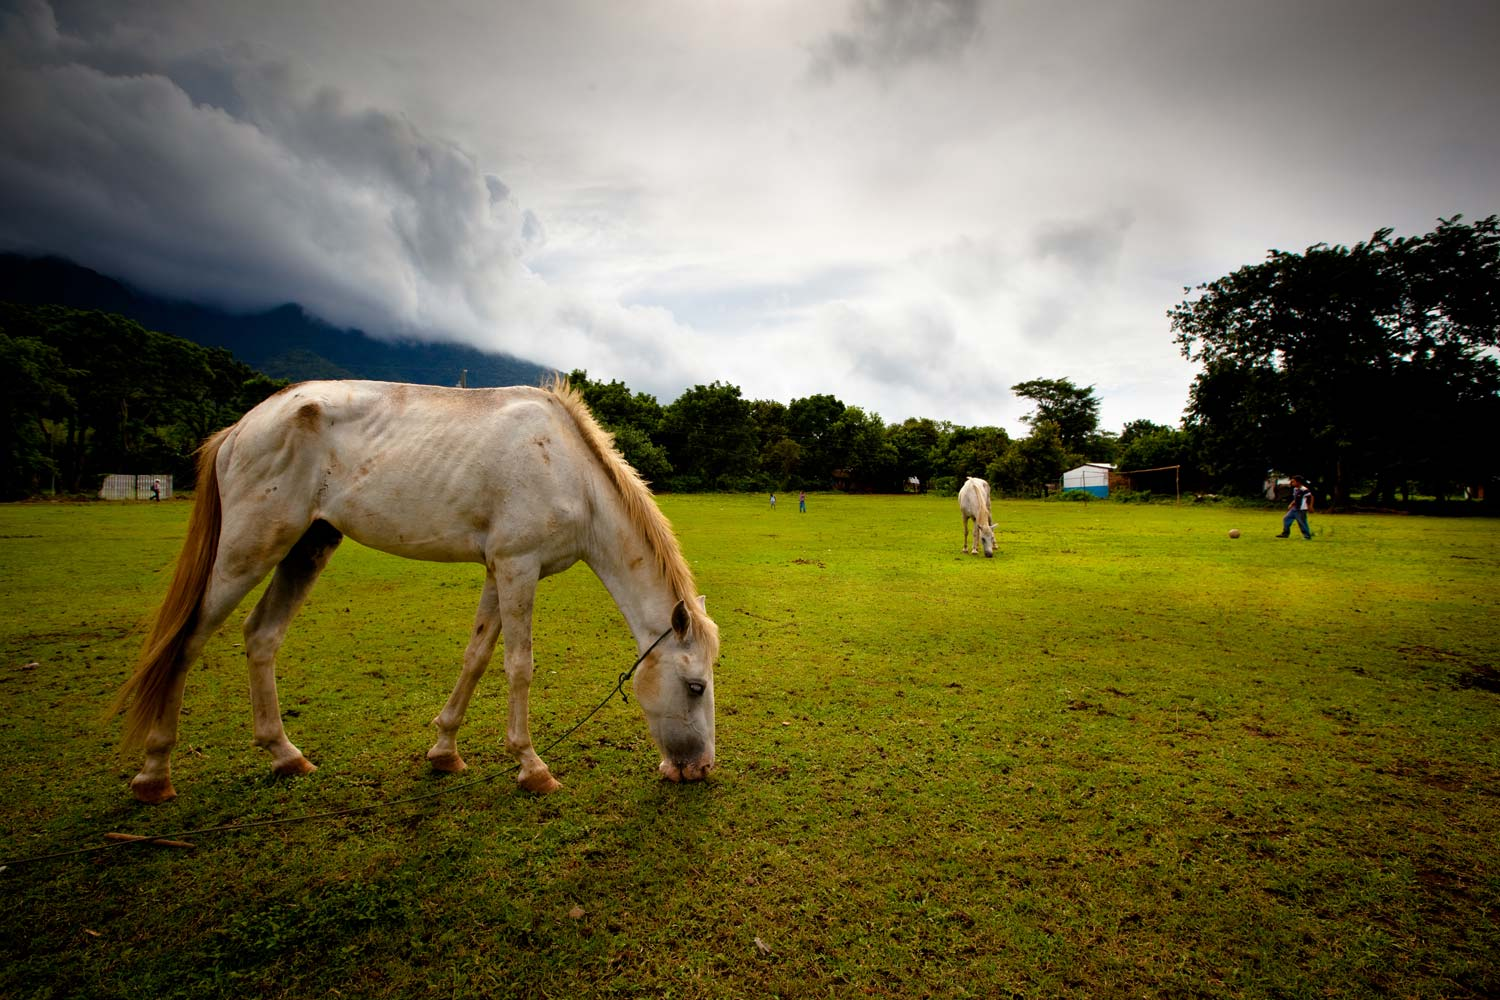 Football pitch, from the Ometepe series